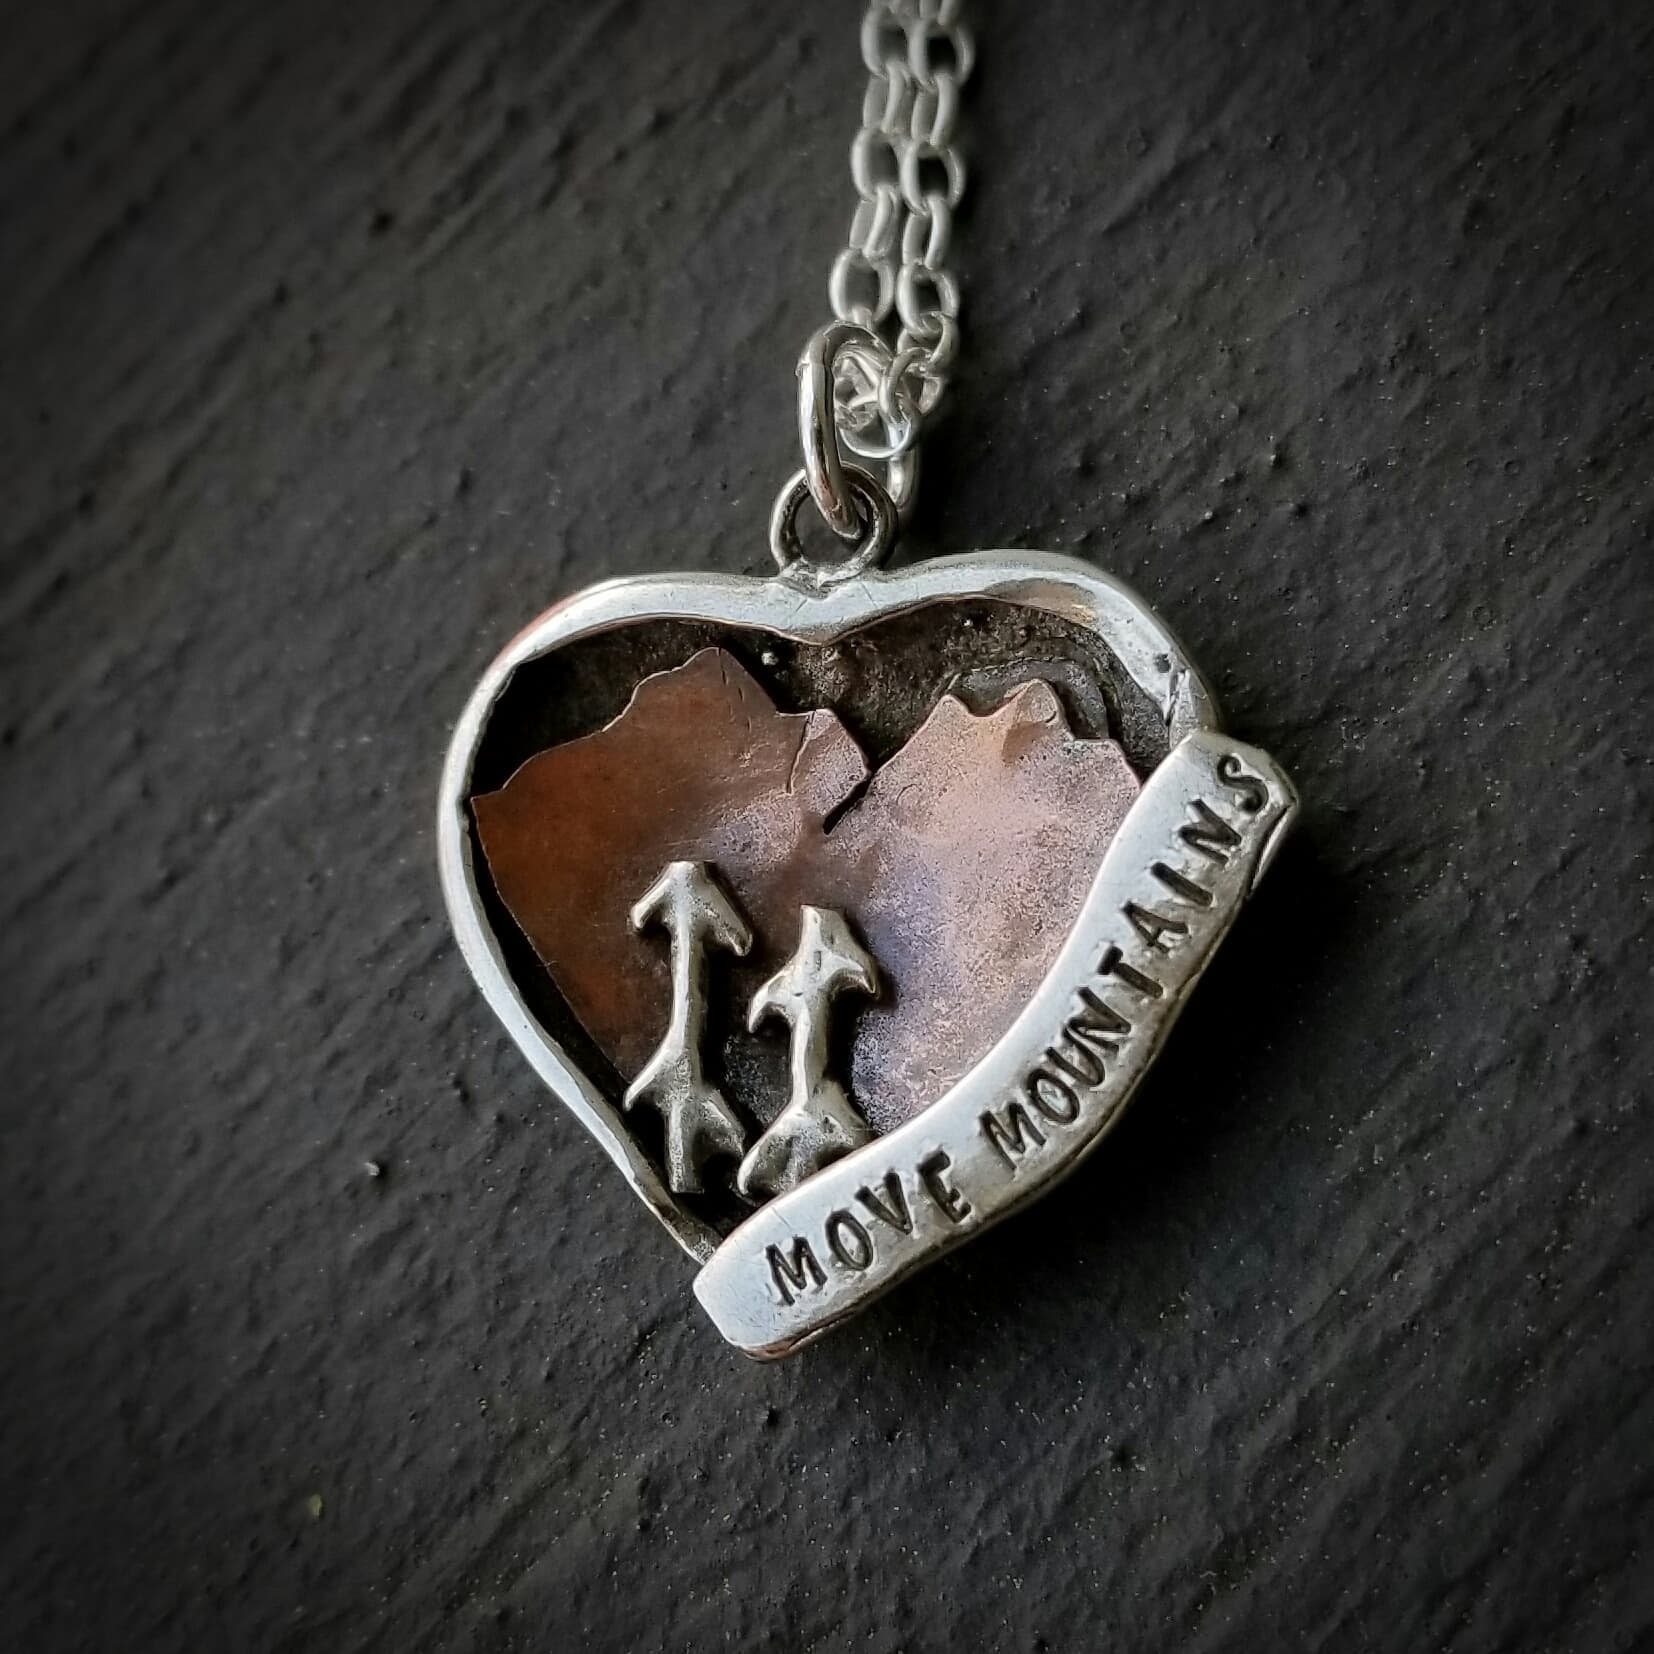 Made in USA Sterling Silver SPRINGER SPANIEL 3D Solid Pendant Charm